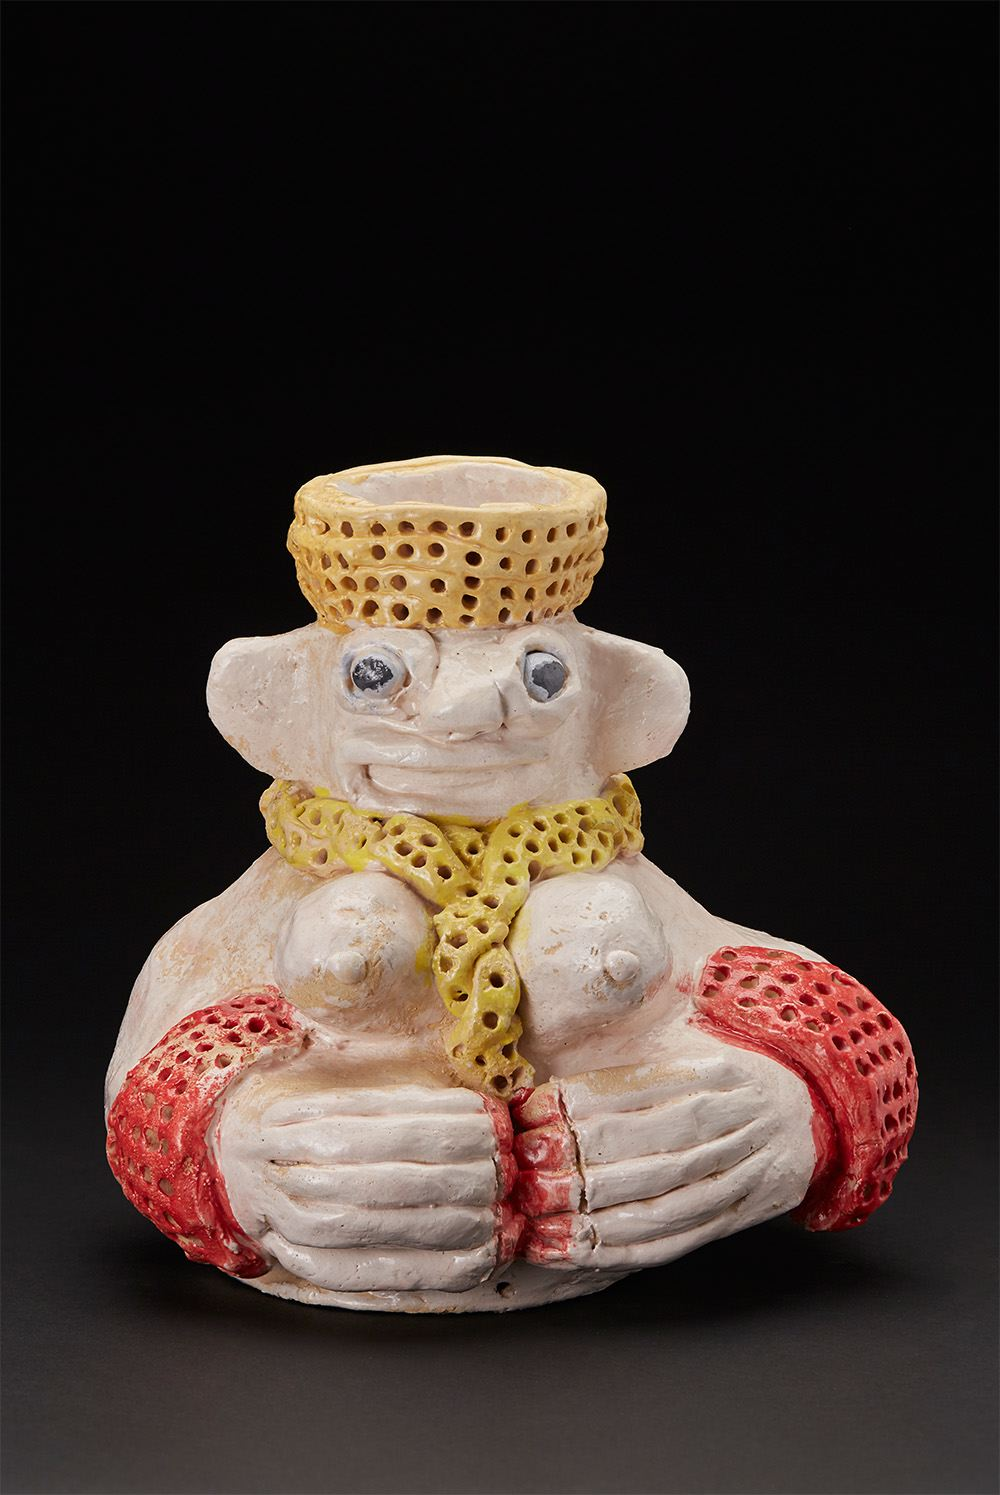 Ricardo Estella    Maya  , 2011 Glazed ceramic 10 x 10 x 8 inches 25.4 x 25.4 x 20.3 cm REs 4